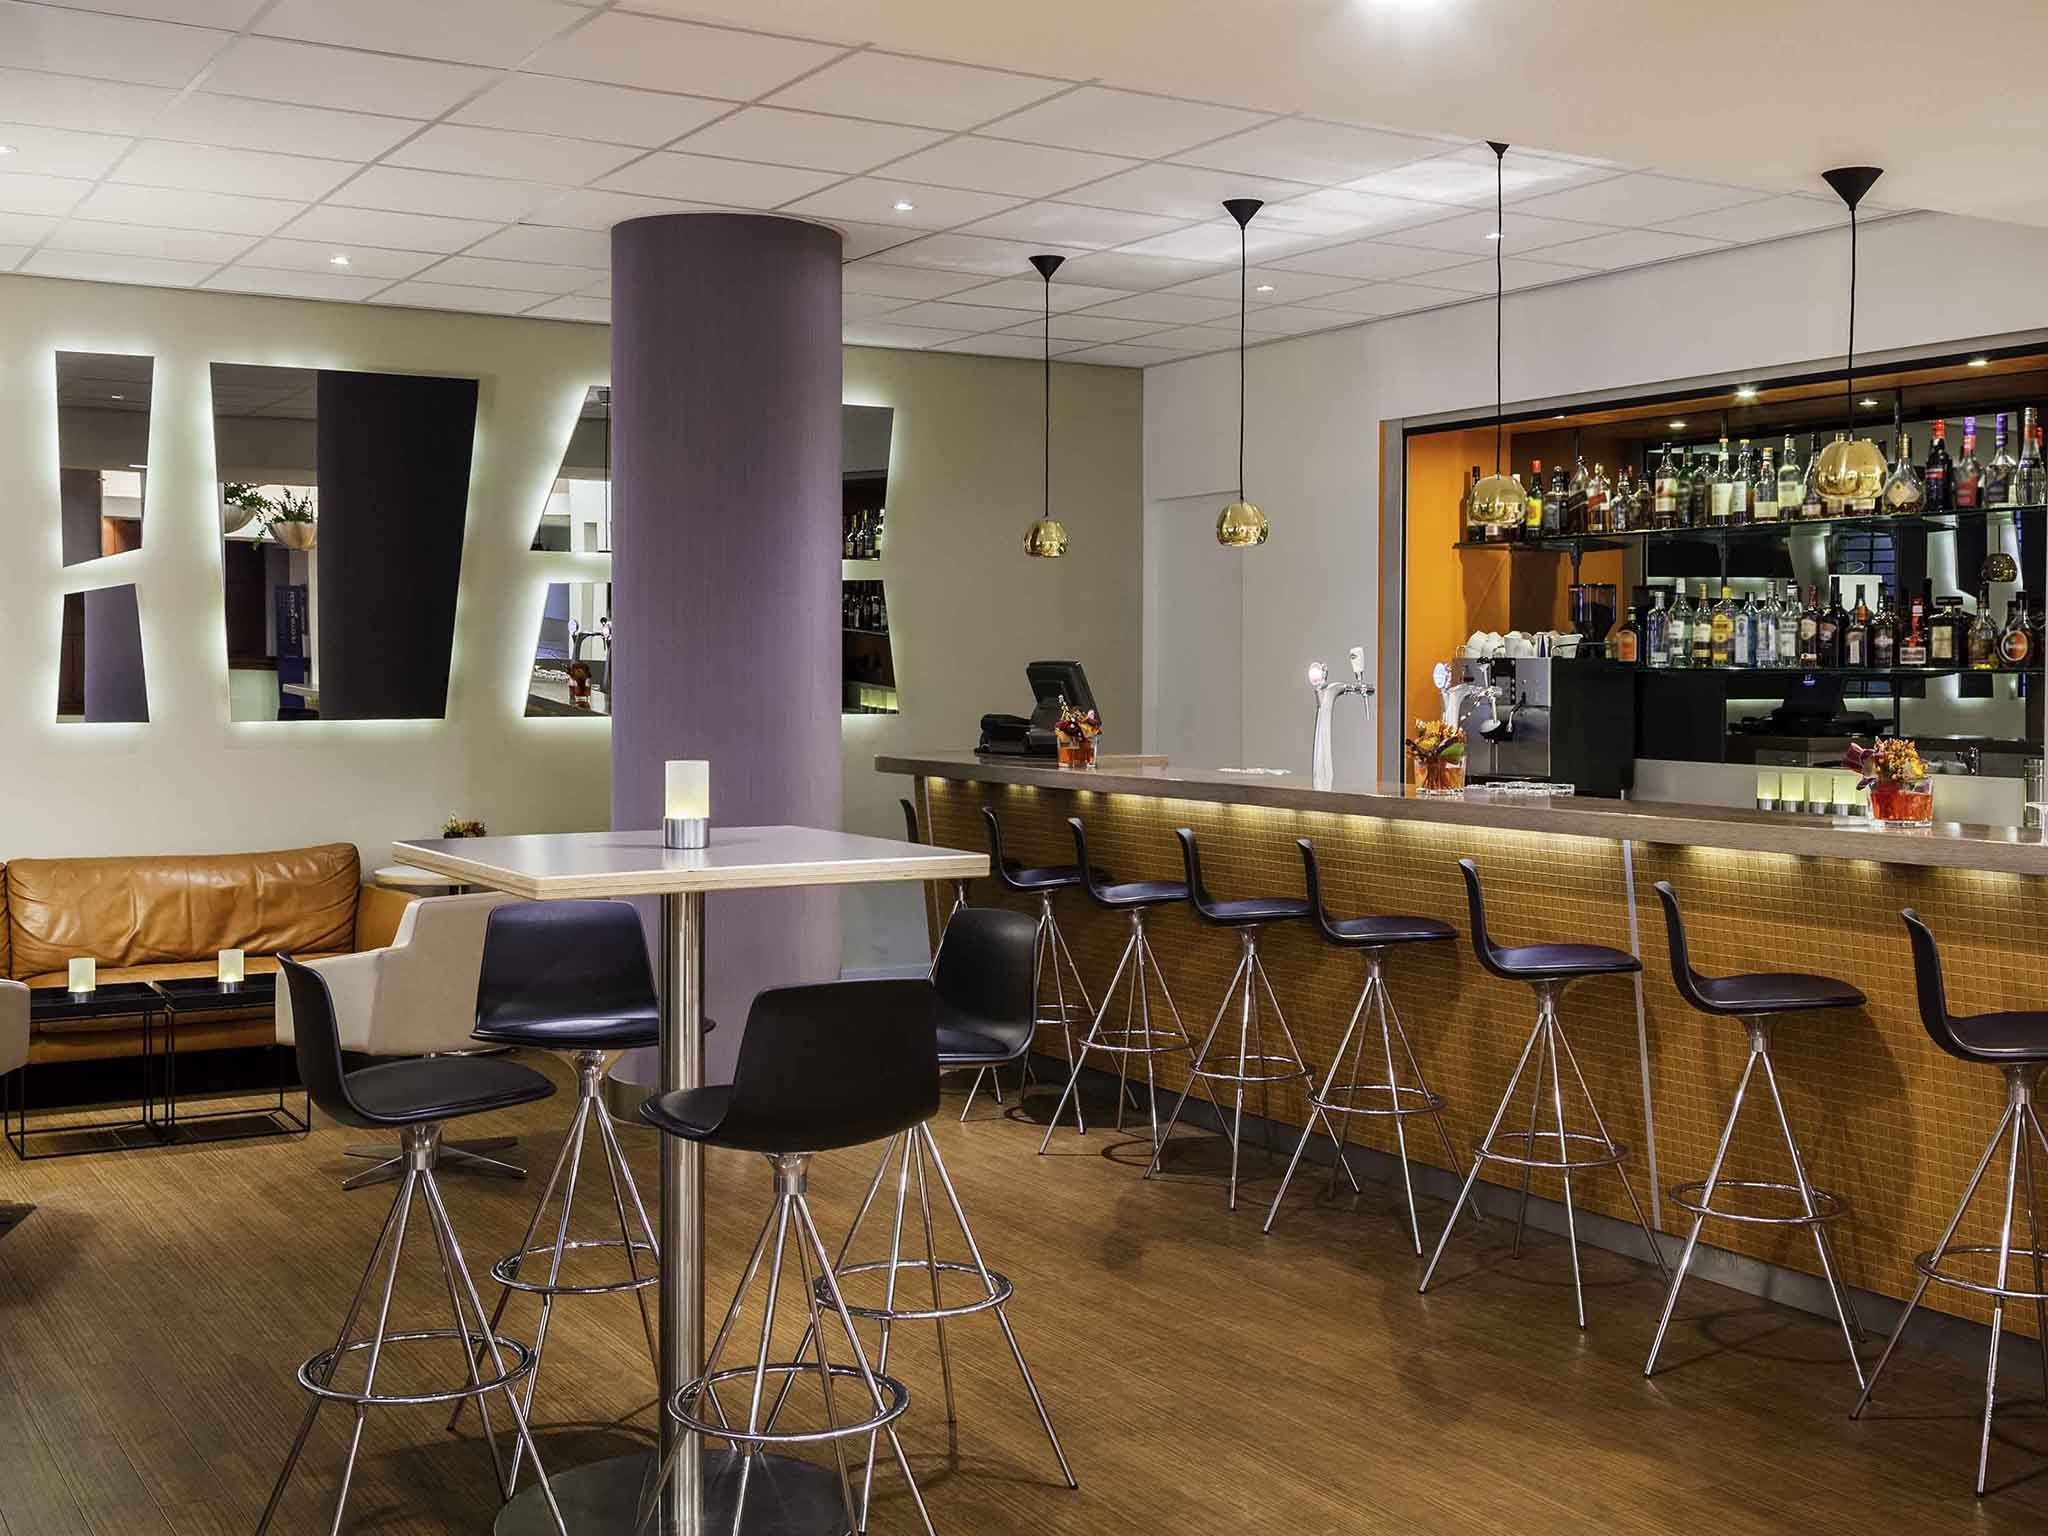 Wallpaper Dinding Di Cafe Paling Bagus Untuk Family Hotel the Hague City Centre Novotel World forum Of Wallpaper Dinding Di Cafe Paling Baik Untuk bykato T1 Dining Table soul Home Pinterest